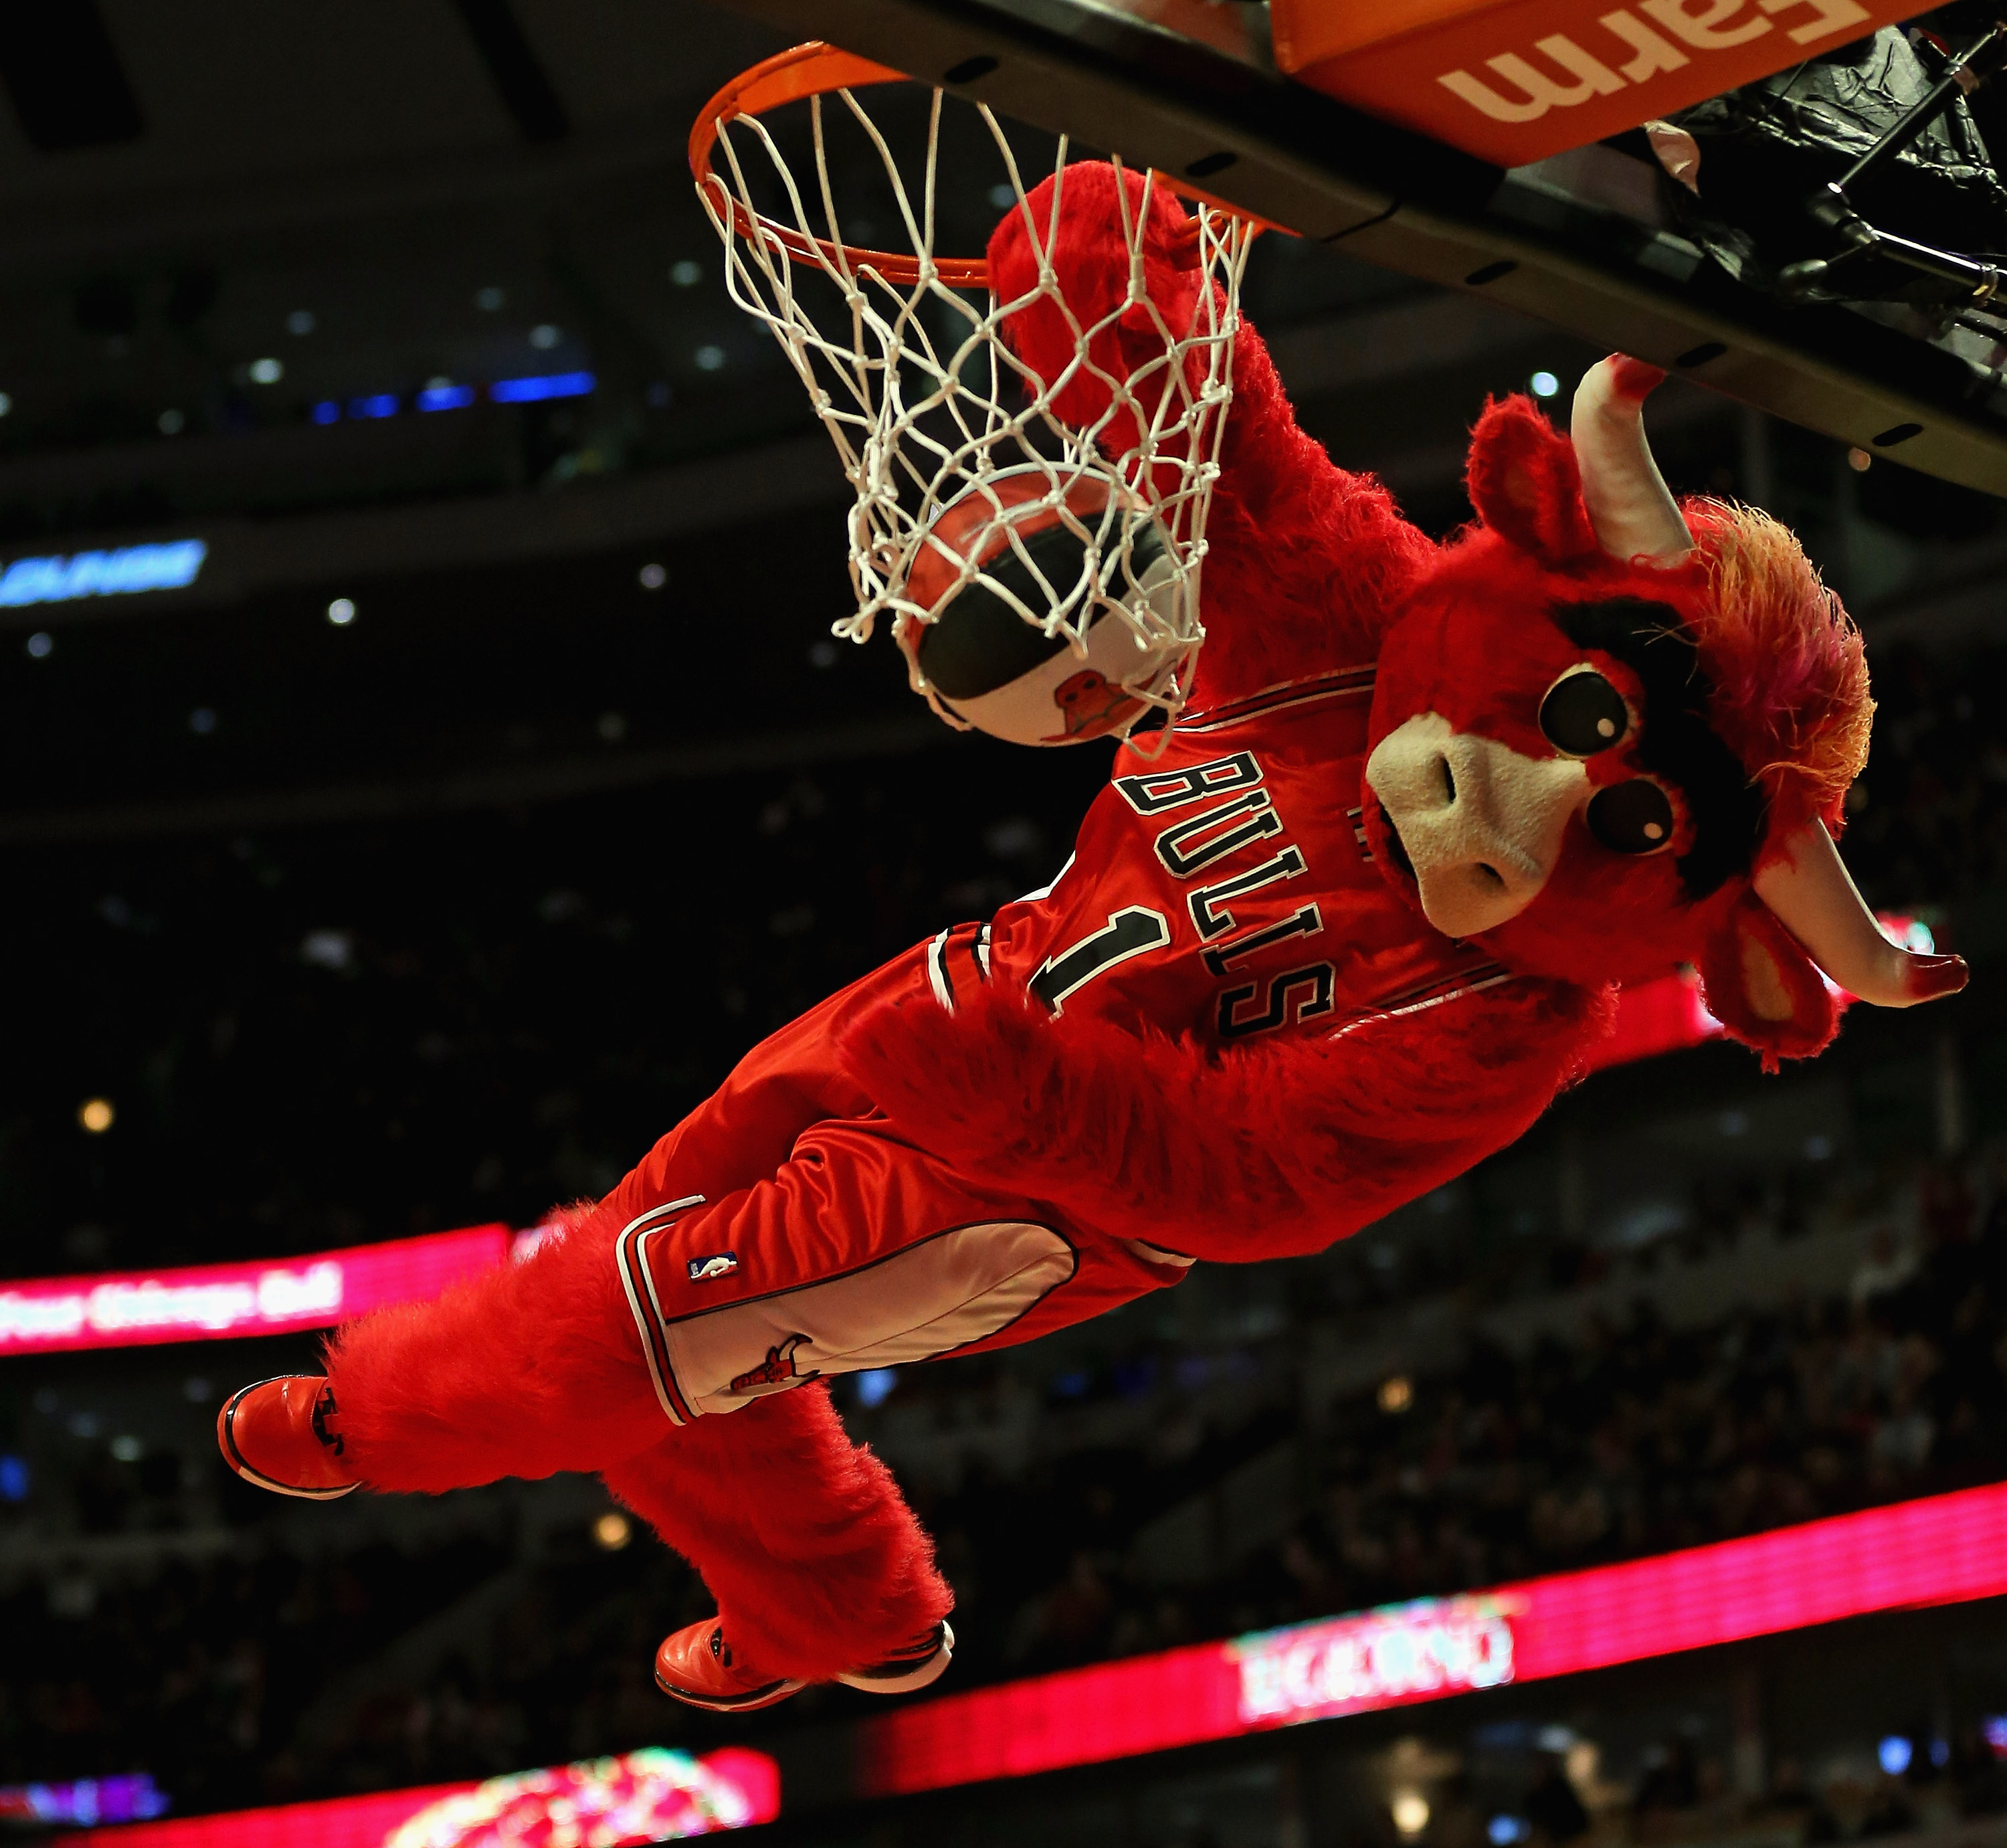 Benny the Bull (Chicago Bulls)